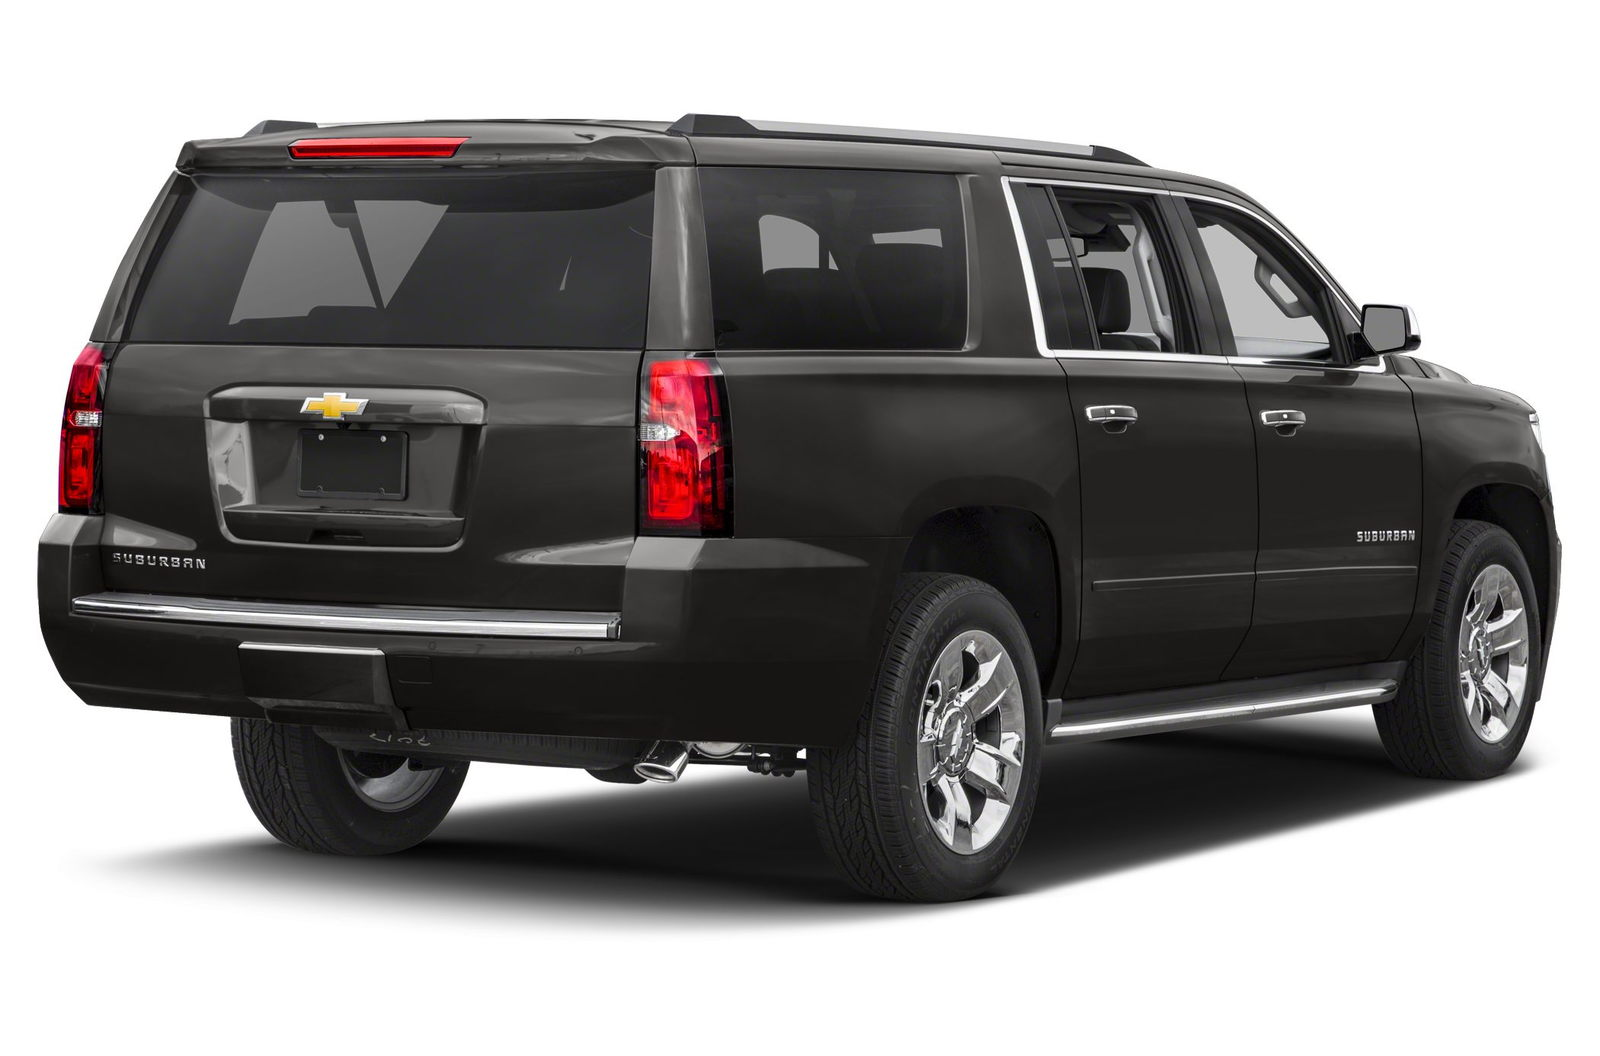 2018 chevrolet suburban deals prices incentives leases overview carsdirect. Black Bedroom Furniture Sets. Home Design Ideas